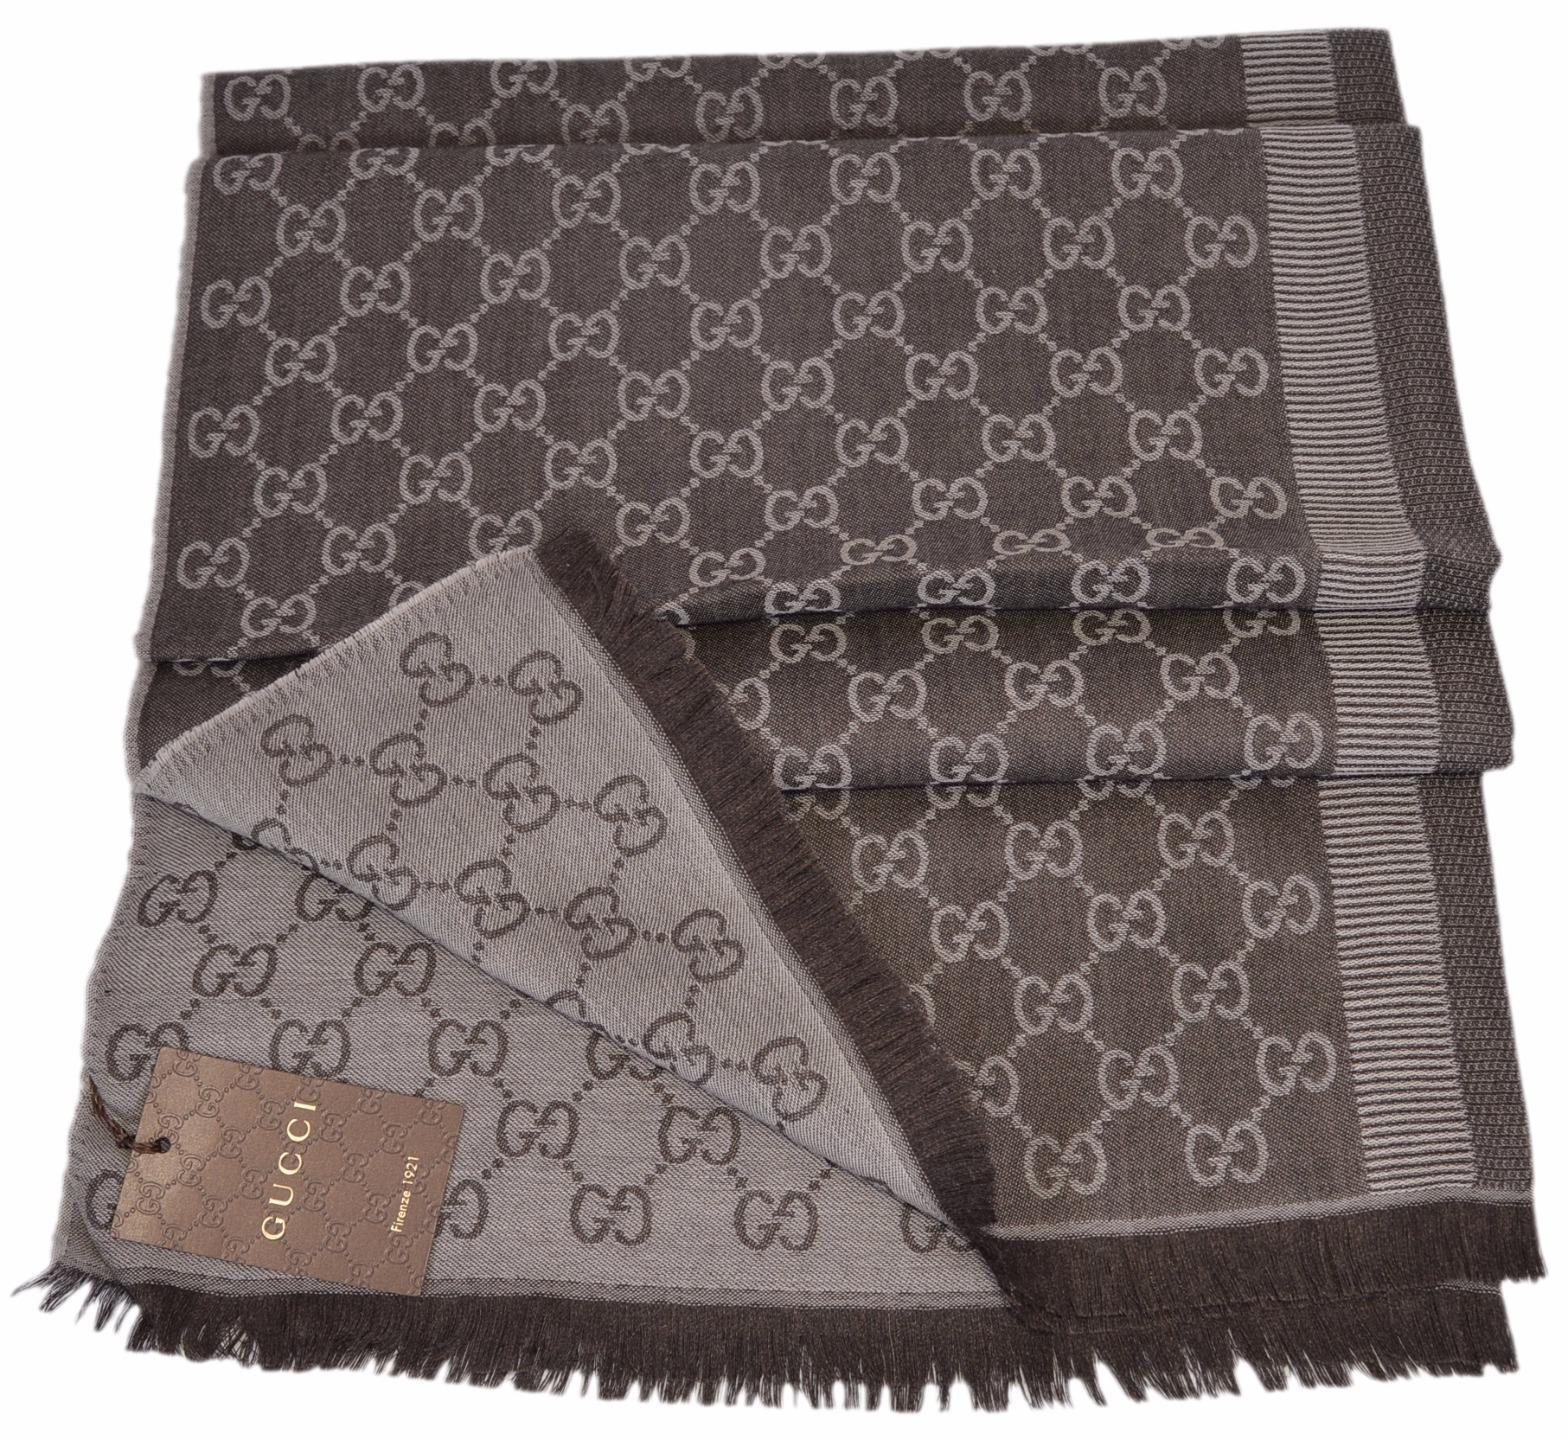 New Gucci 282390 Large Brown Sand Wool Silk GG Guccissima Scarf Muffler